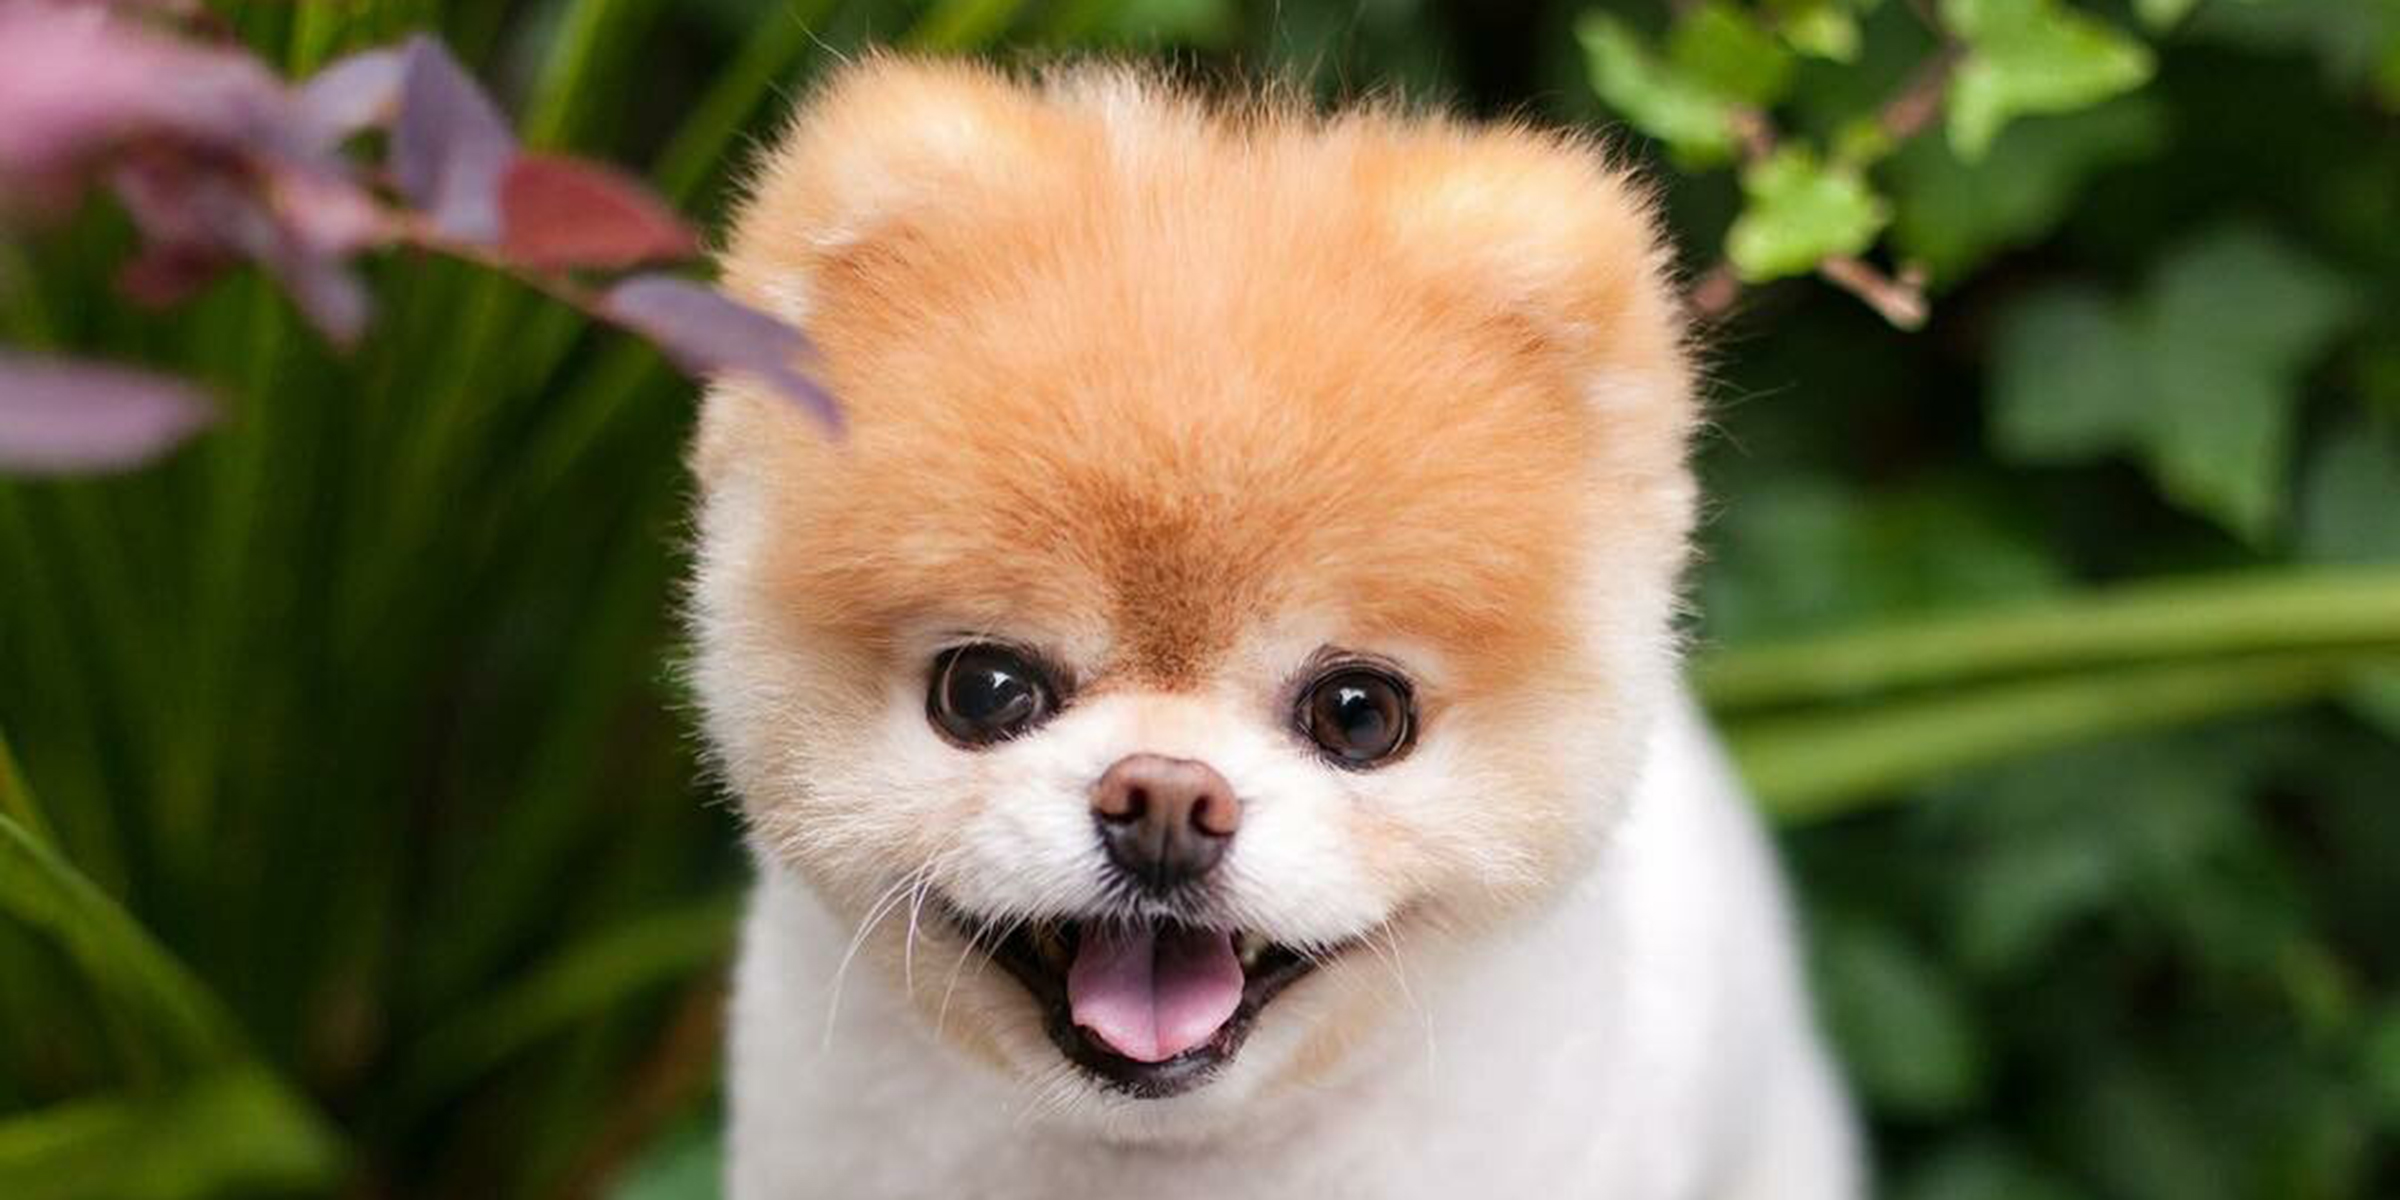 World S Cutest Dog Boo Died Of A Broken Heart His Owners Say